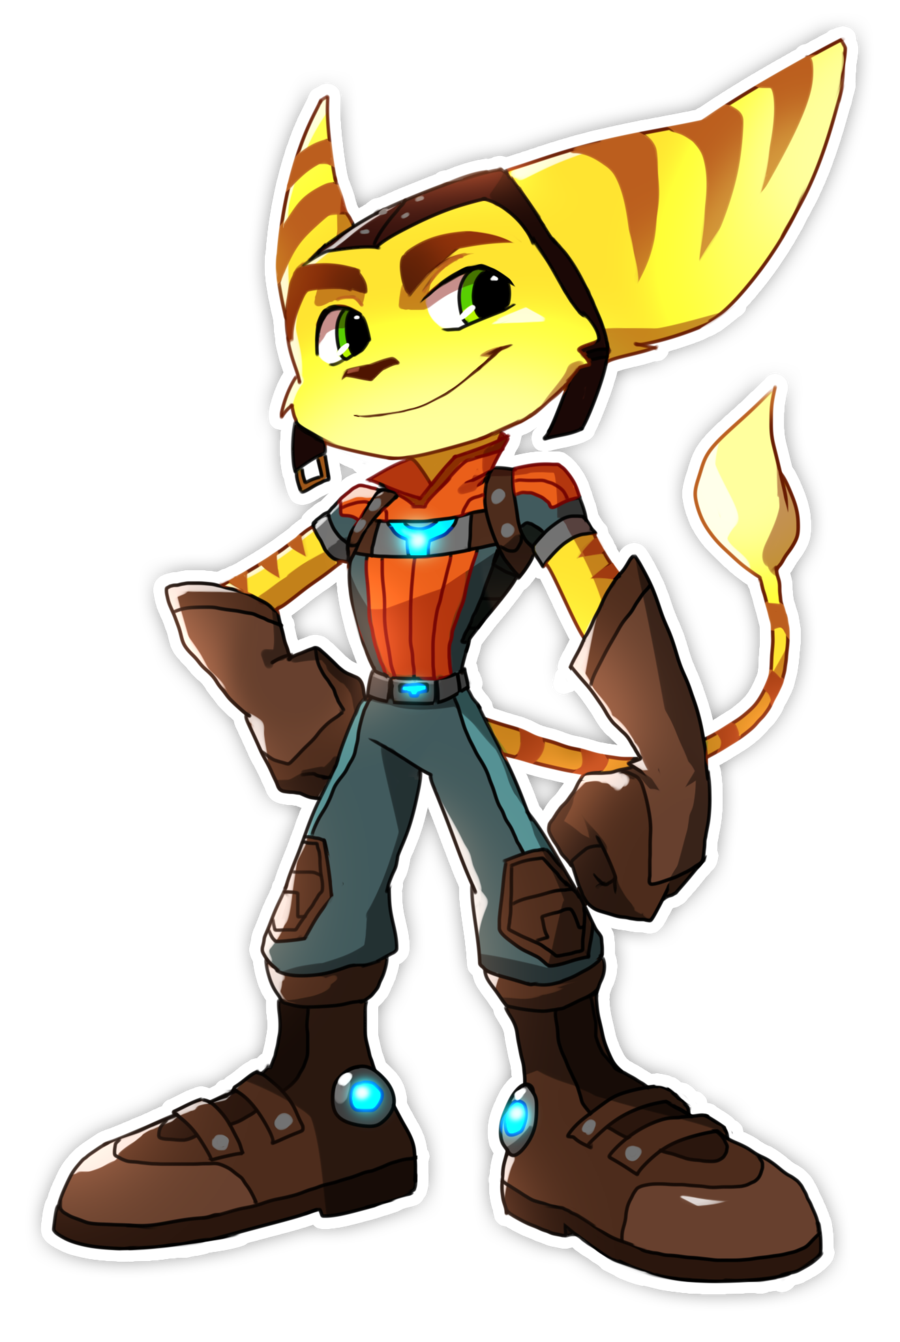 Ratchet drawing. By bloomth on deviantart